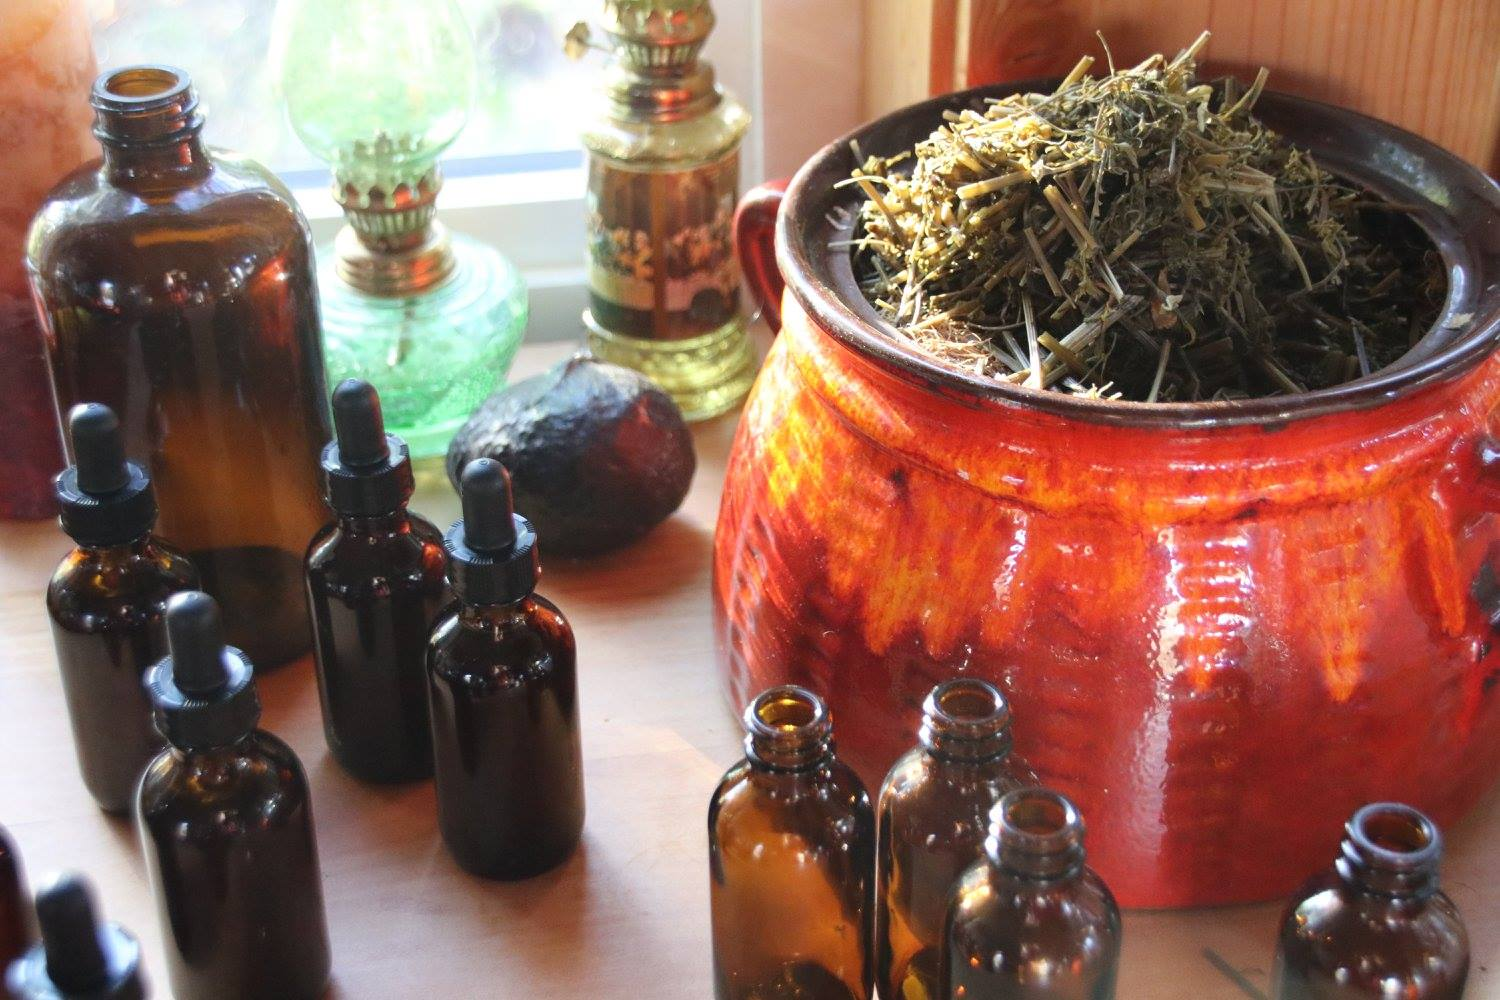 making tinctures